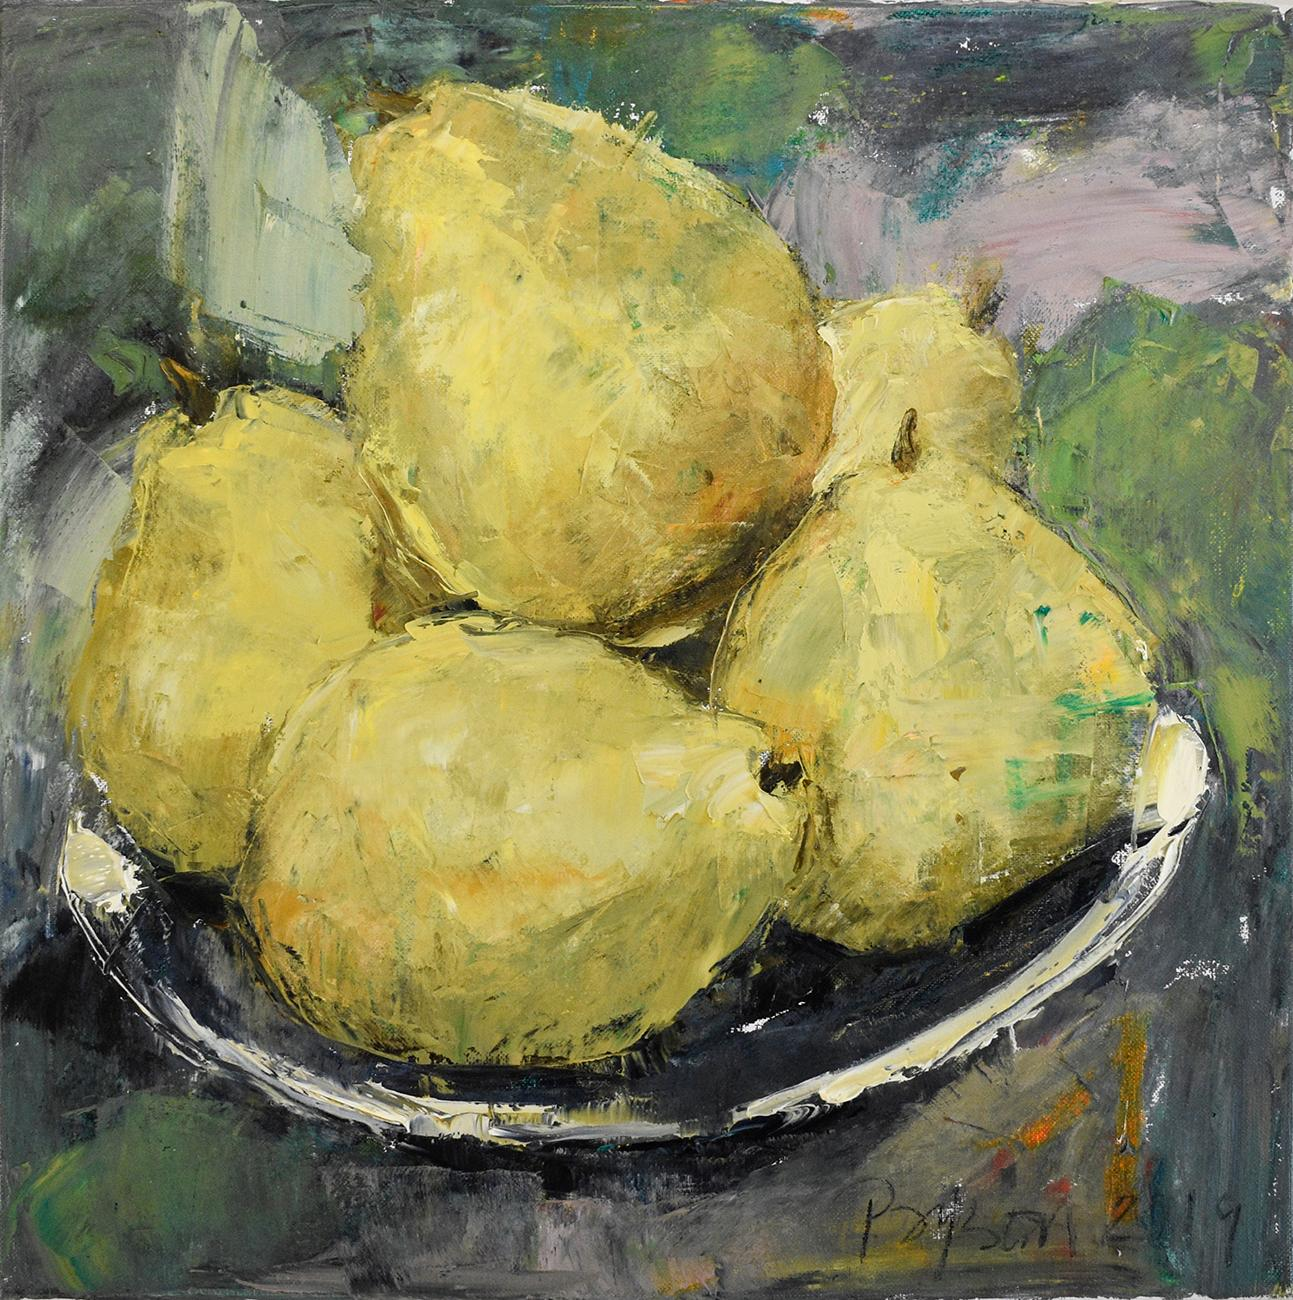 Pears (Impressionistic Fruit Still Life Painting of Chartreuse Yellow Pears)